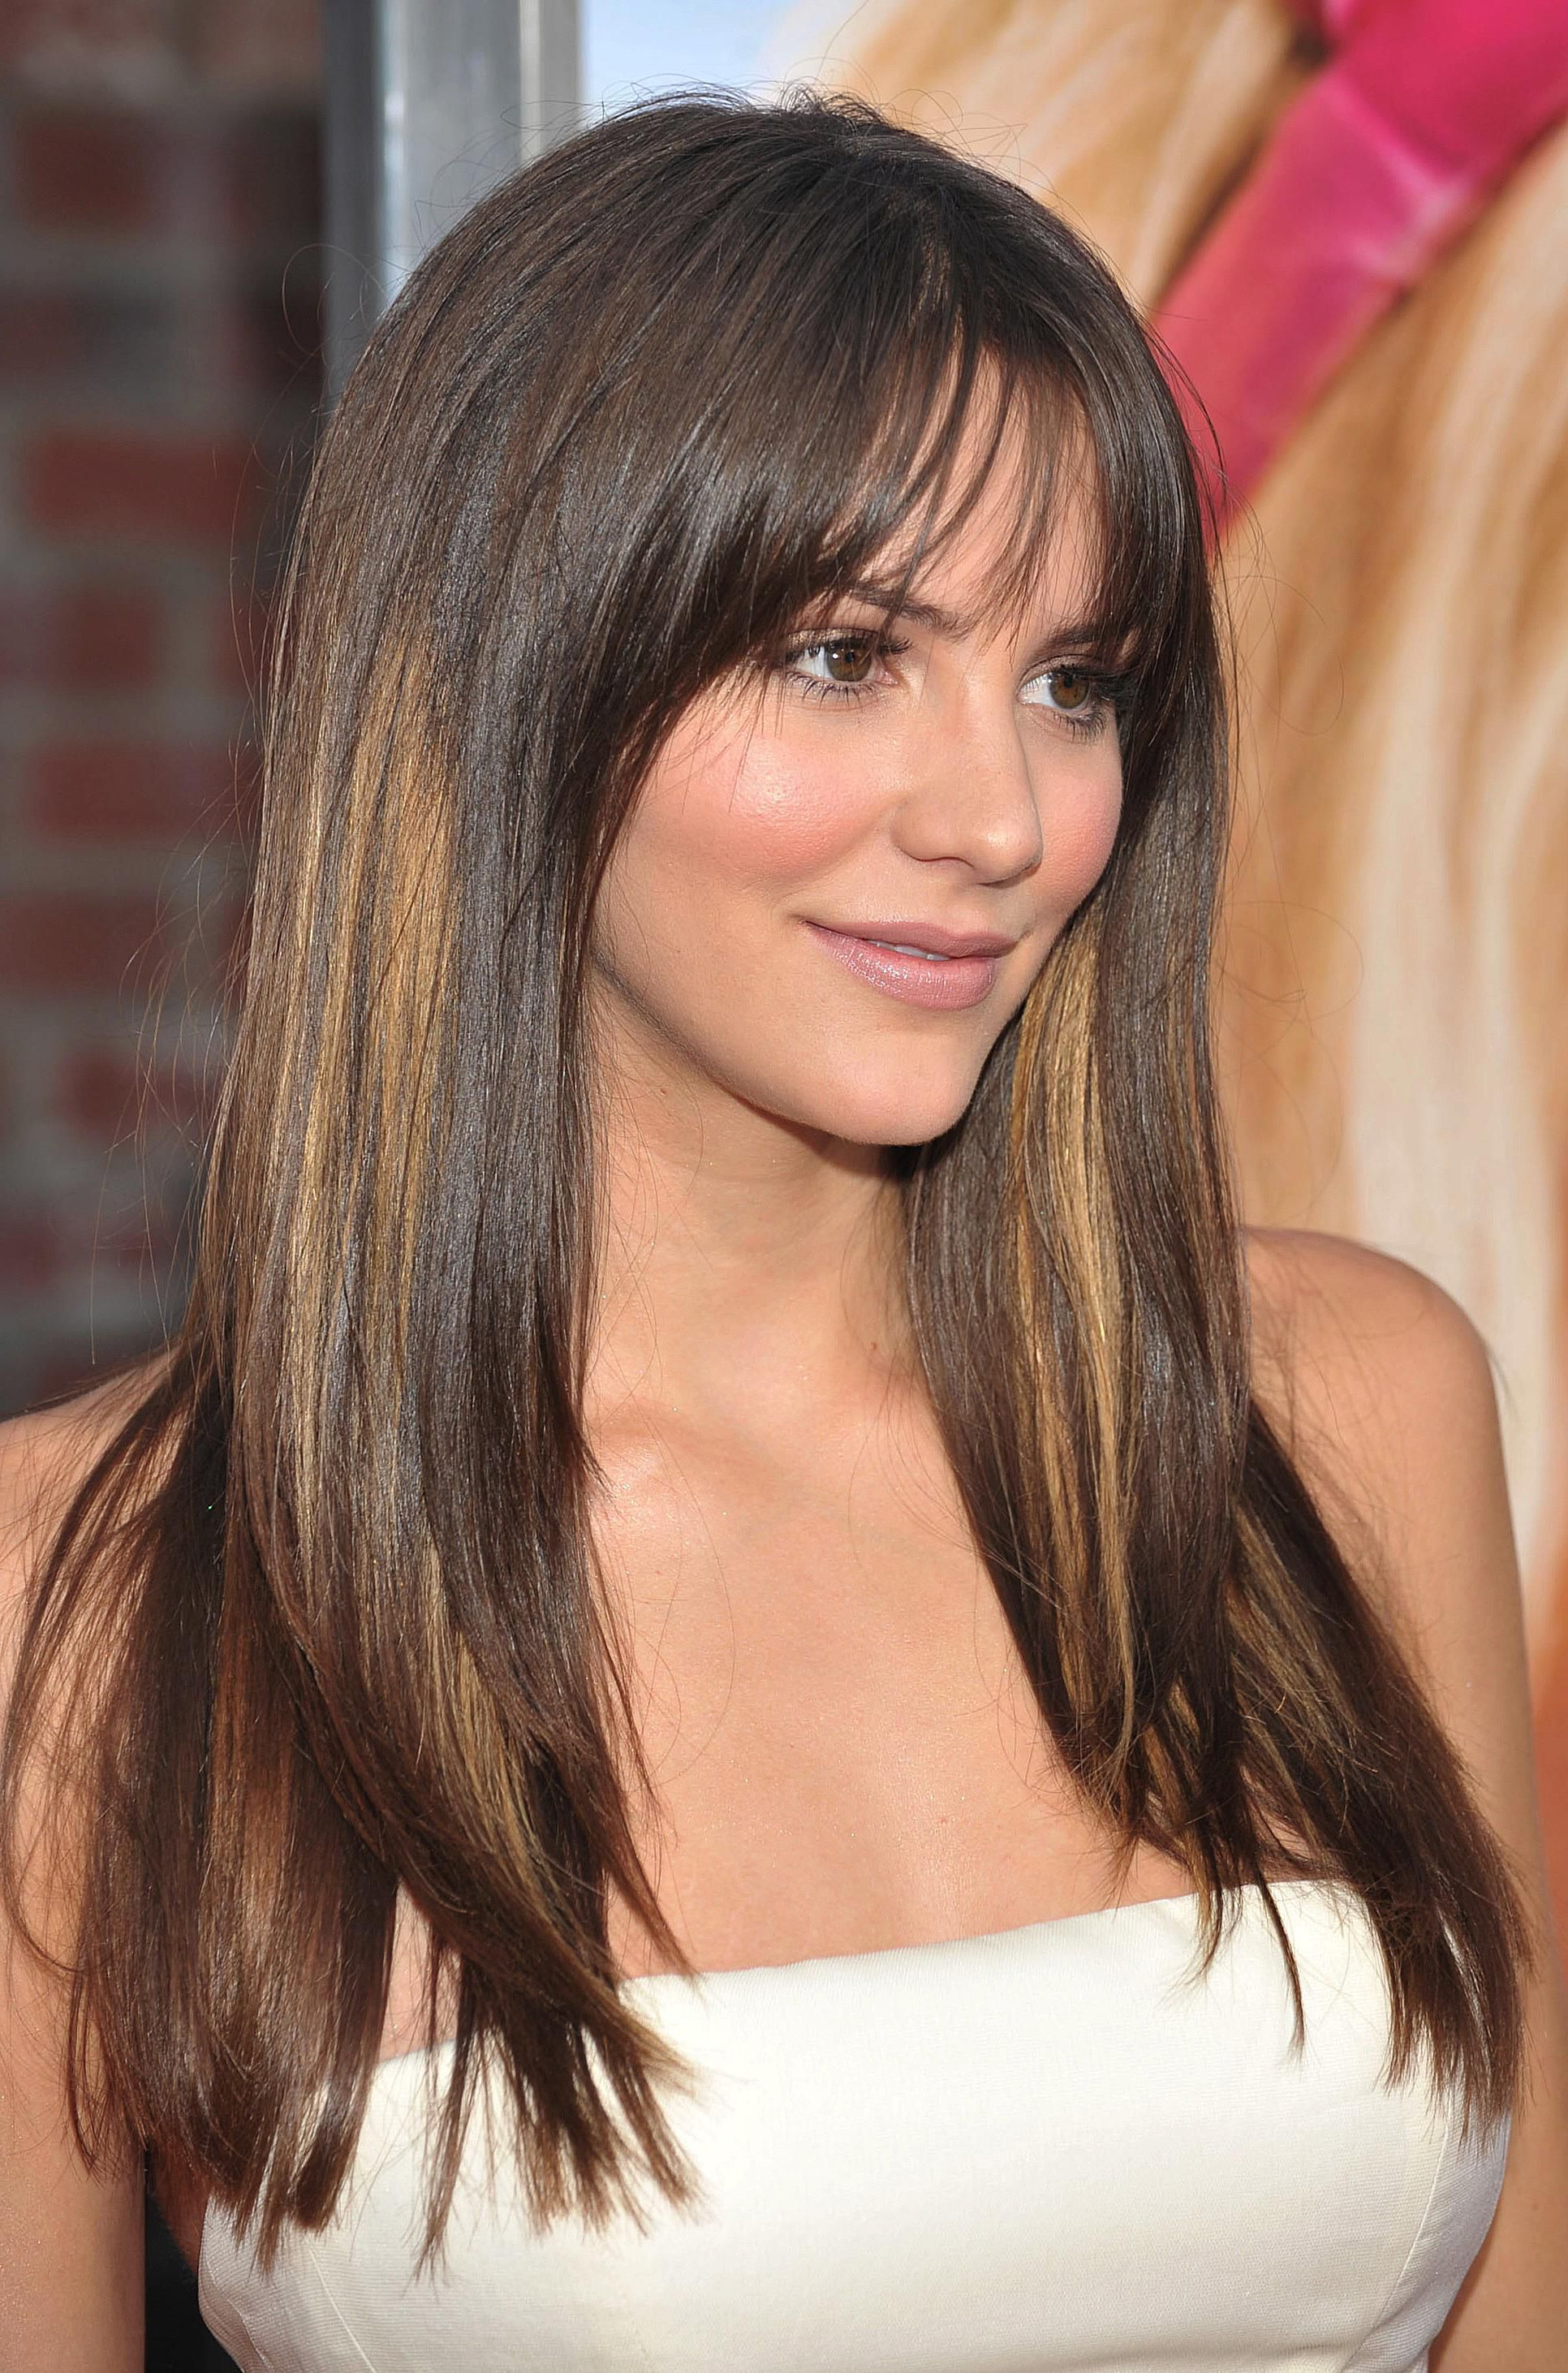 35 Flattering Hairstyles For Round Faces Intended For Well Known Medium Haircuts With Layers For Round Faces (Gallery 13 of 20)